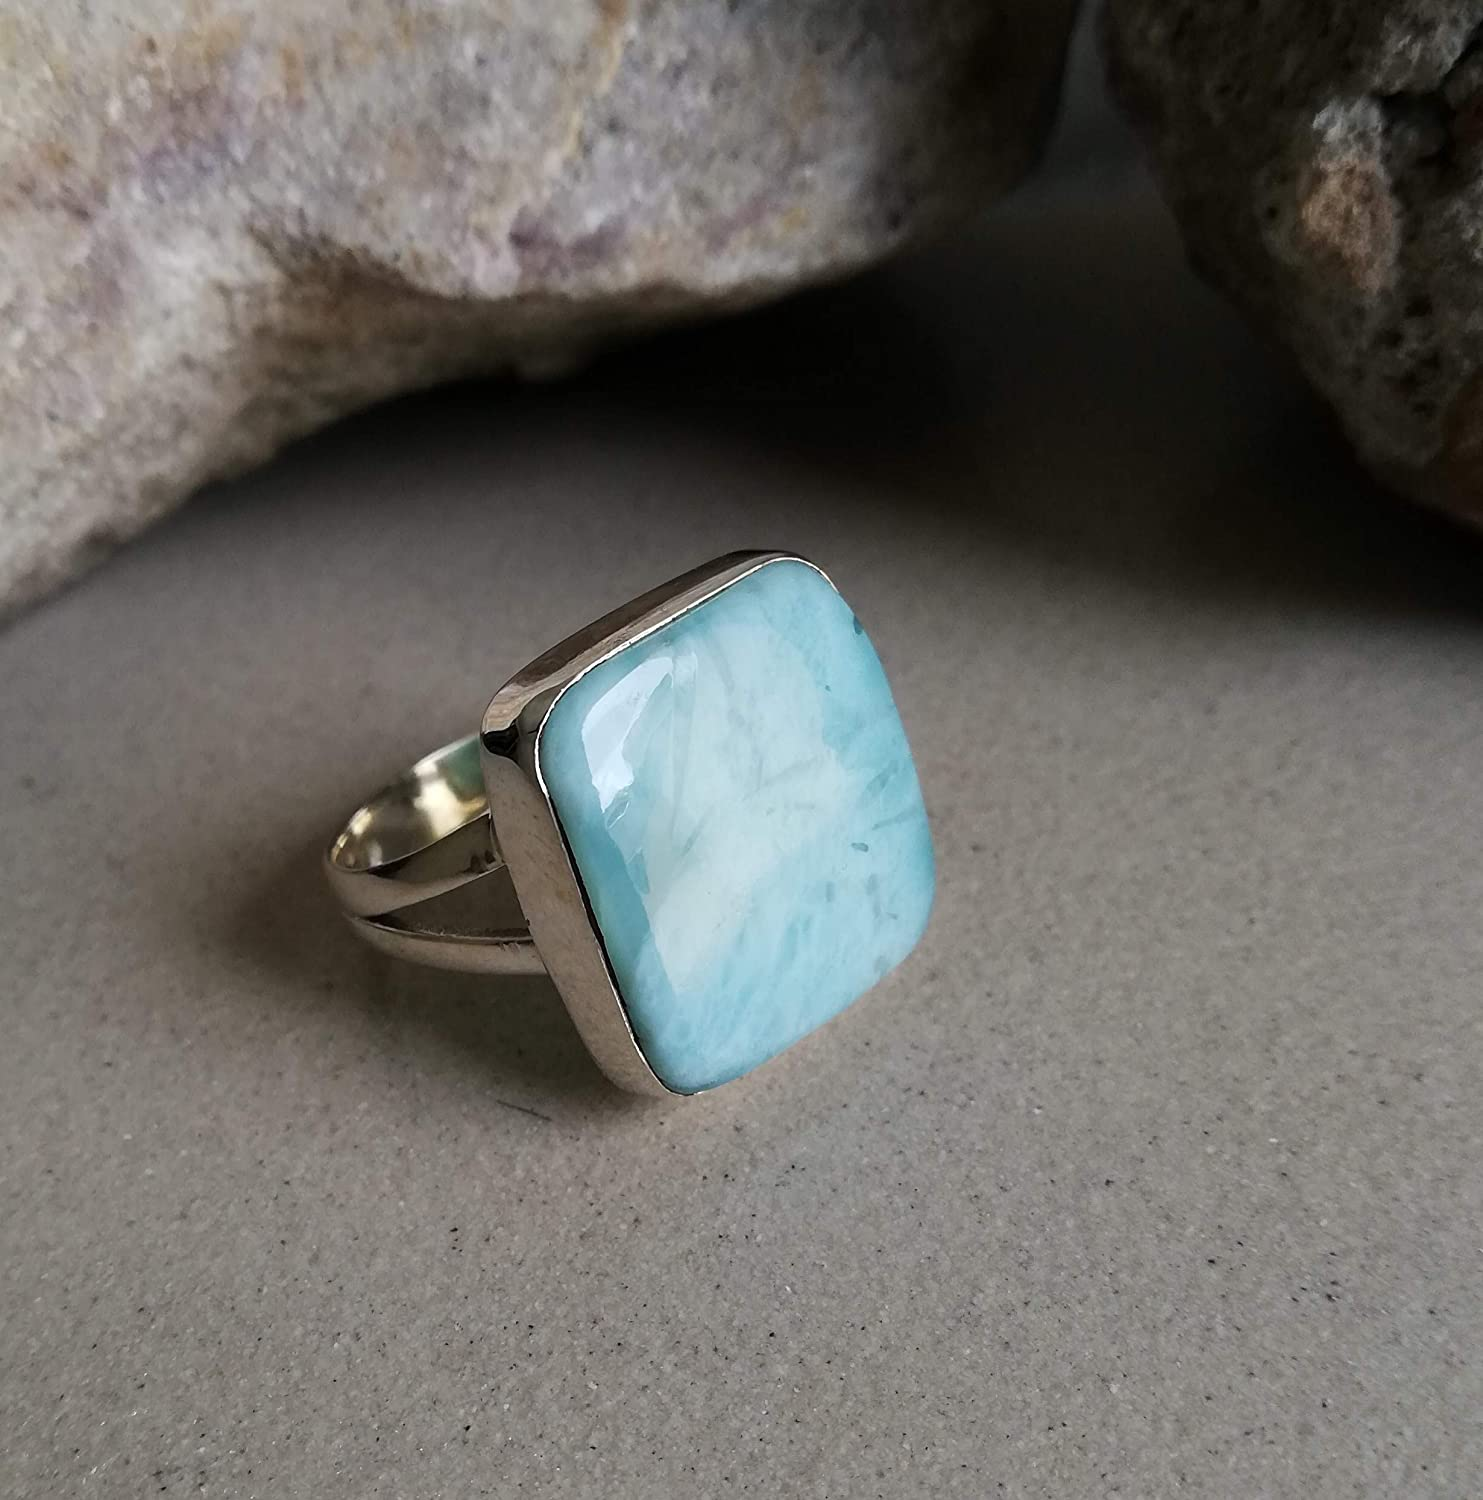 Larimar Ring 925 Sterling Silver Square Shape Ring Dominican Larimar Ring Caribbean Larimar Ring Dolphin Stone Ring Blue Larimar Ring Healing Crystal Victorian Ring Ultimate Ring US All Size